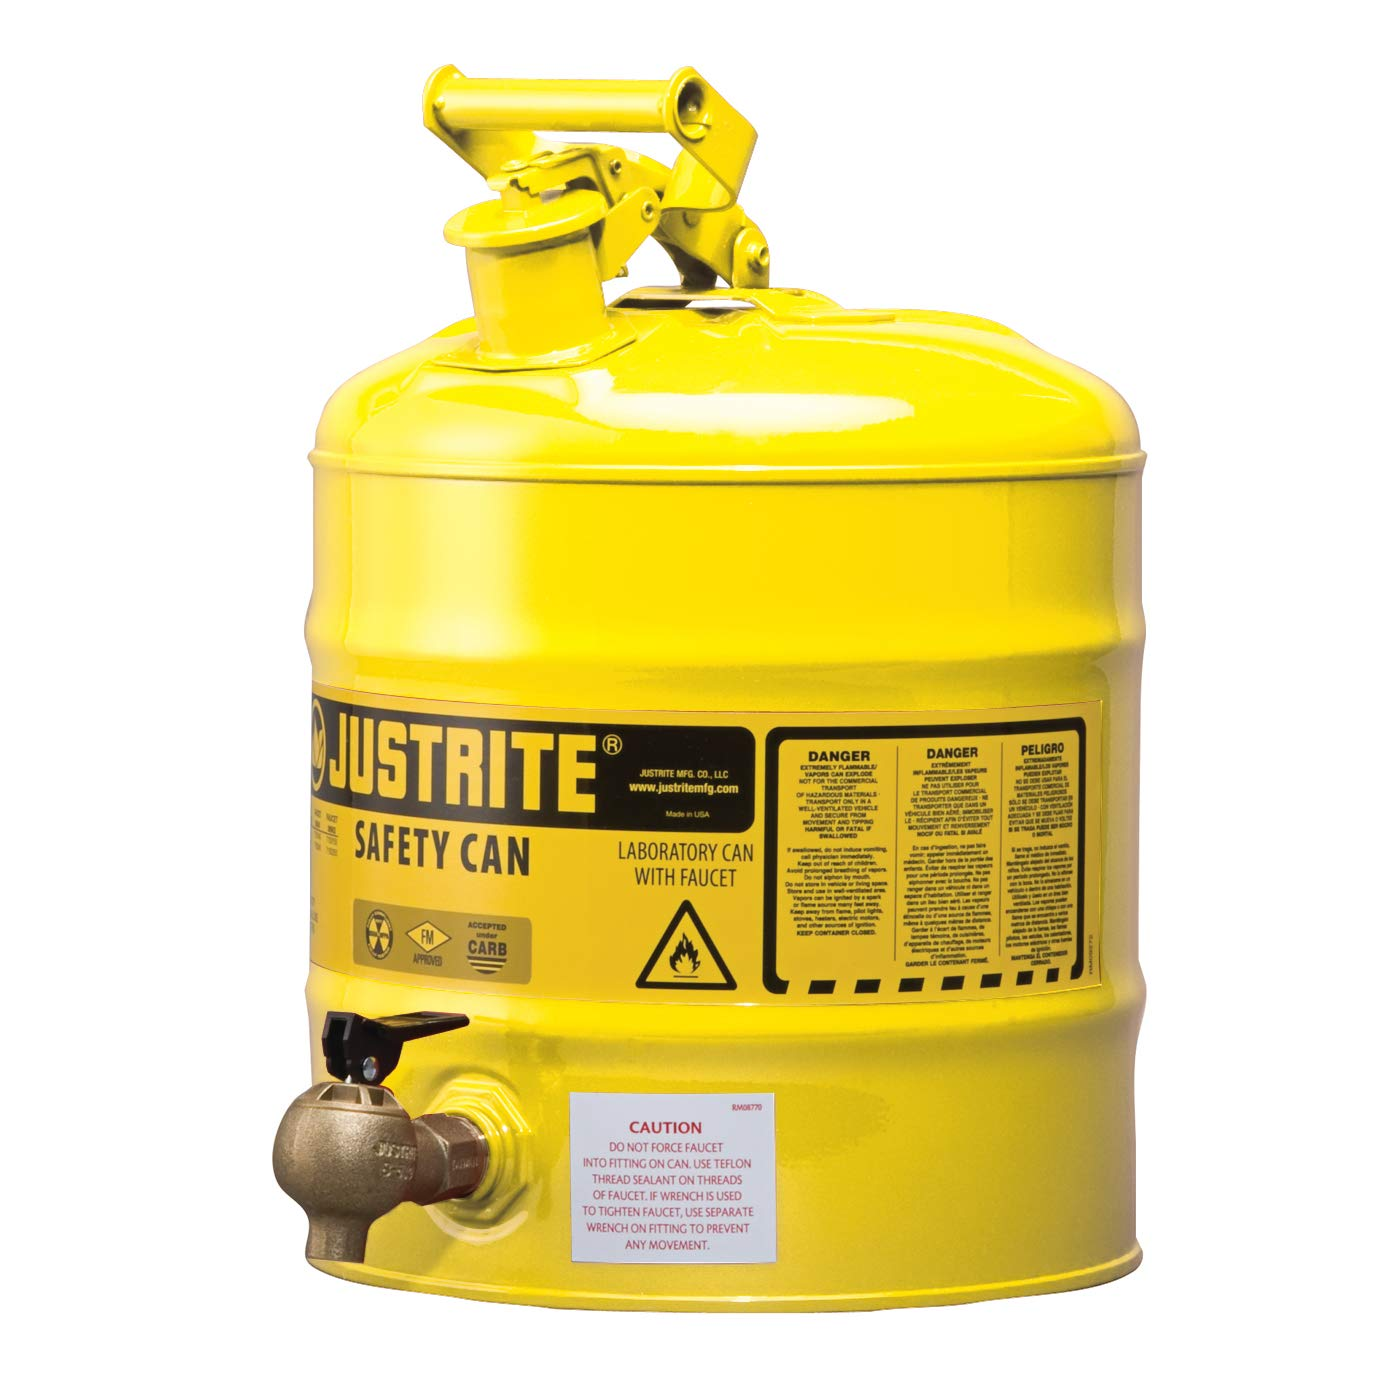 Justrite 7150240 Type 1 Shelf Safety Can with 08540 Faucet, 5 Gal, Yellow